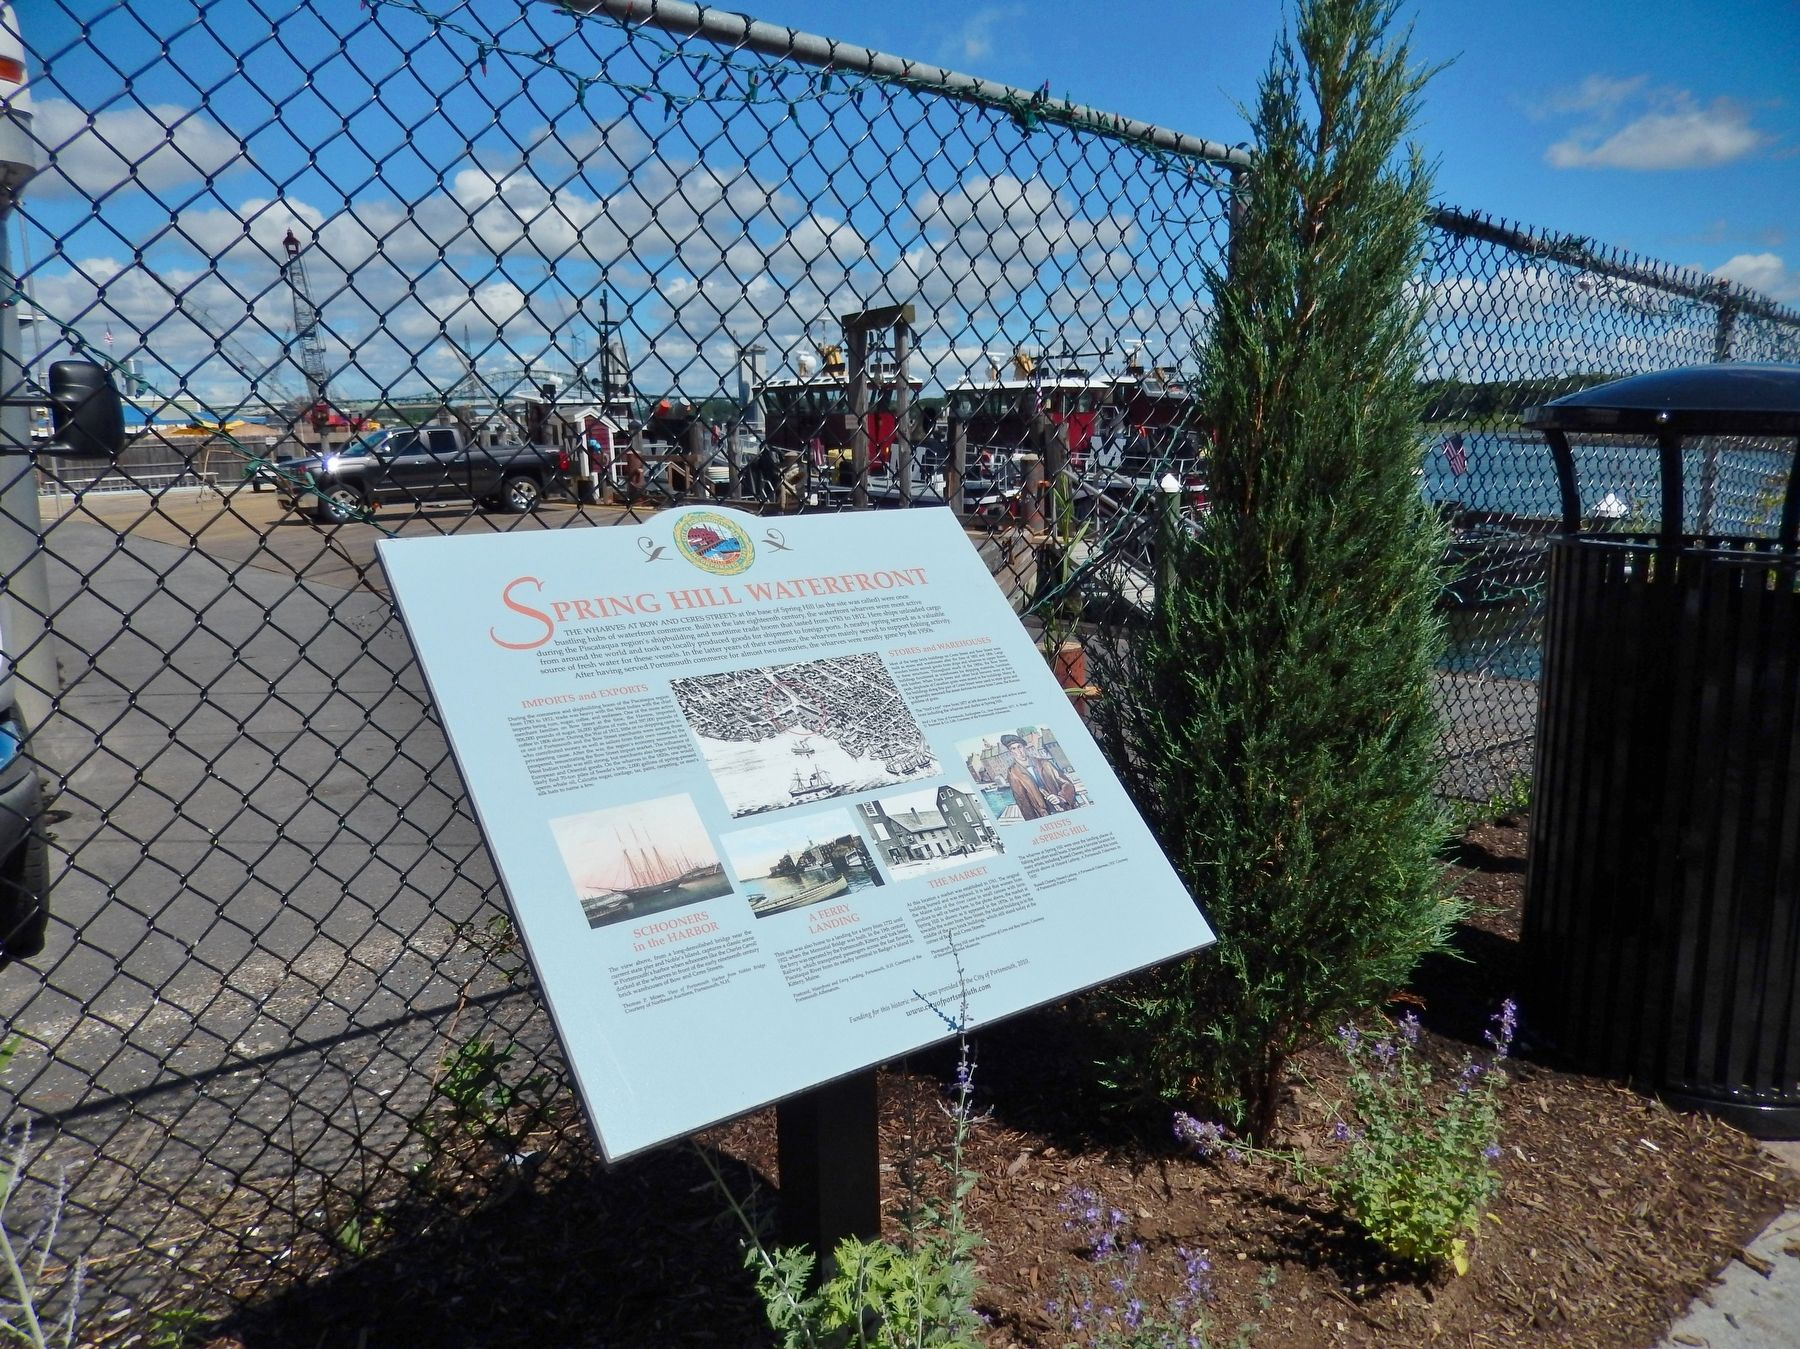 Spring Hill Waterfront Marker (<i>wide view; overlooking dock beyond the fence</i>) image. Click for full size.